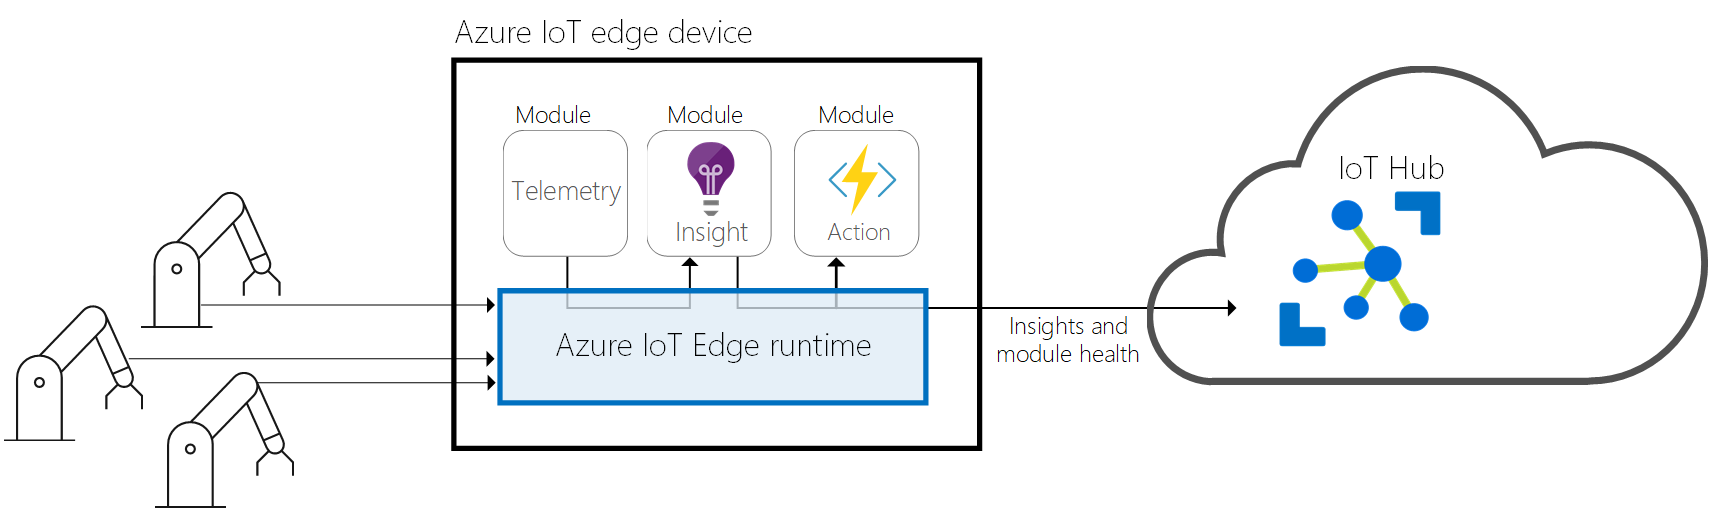 https://docs.microsoft.com/en-us/azure/iot-edge/media/about-iot-edge/runtime.png